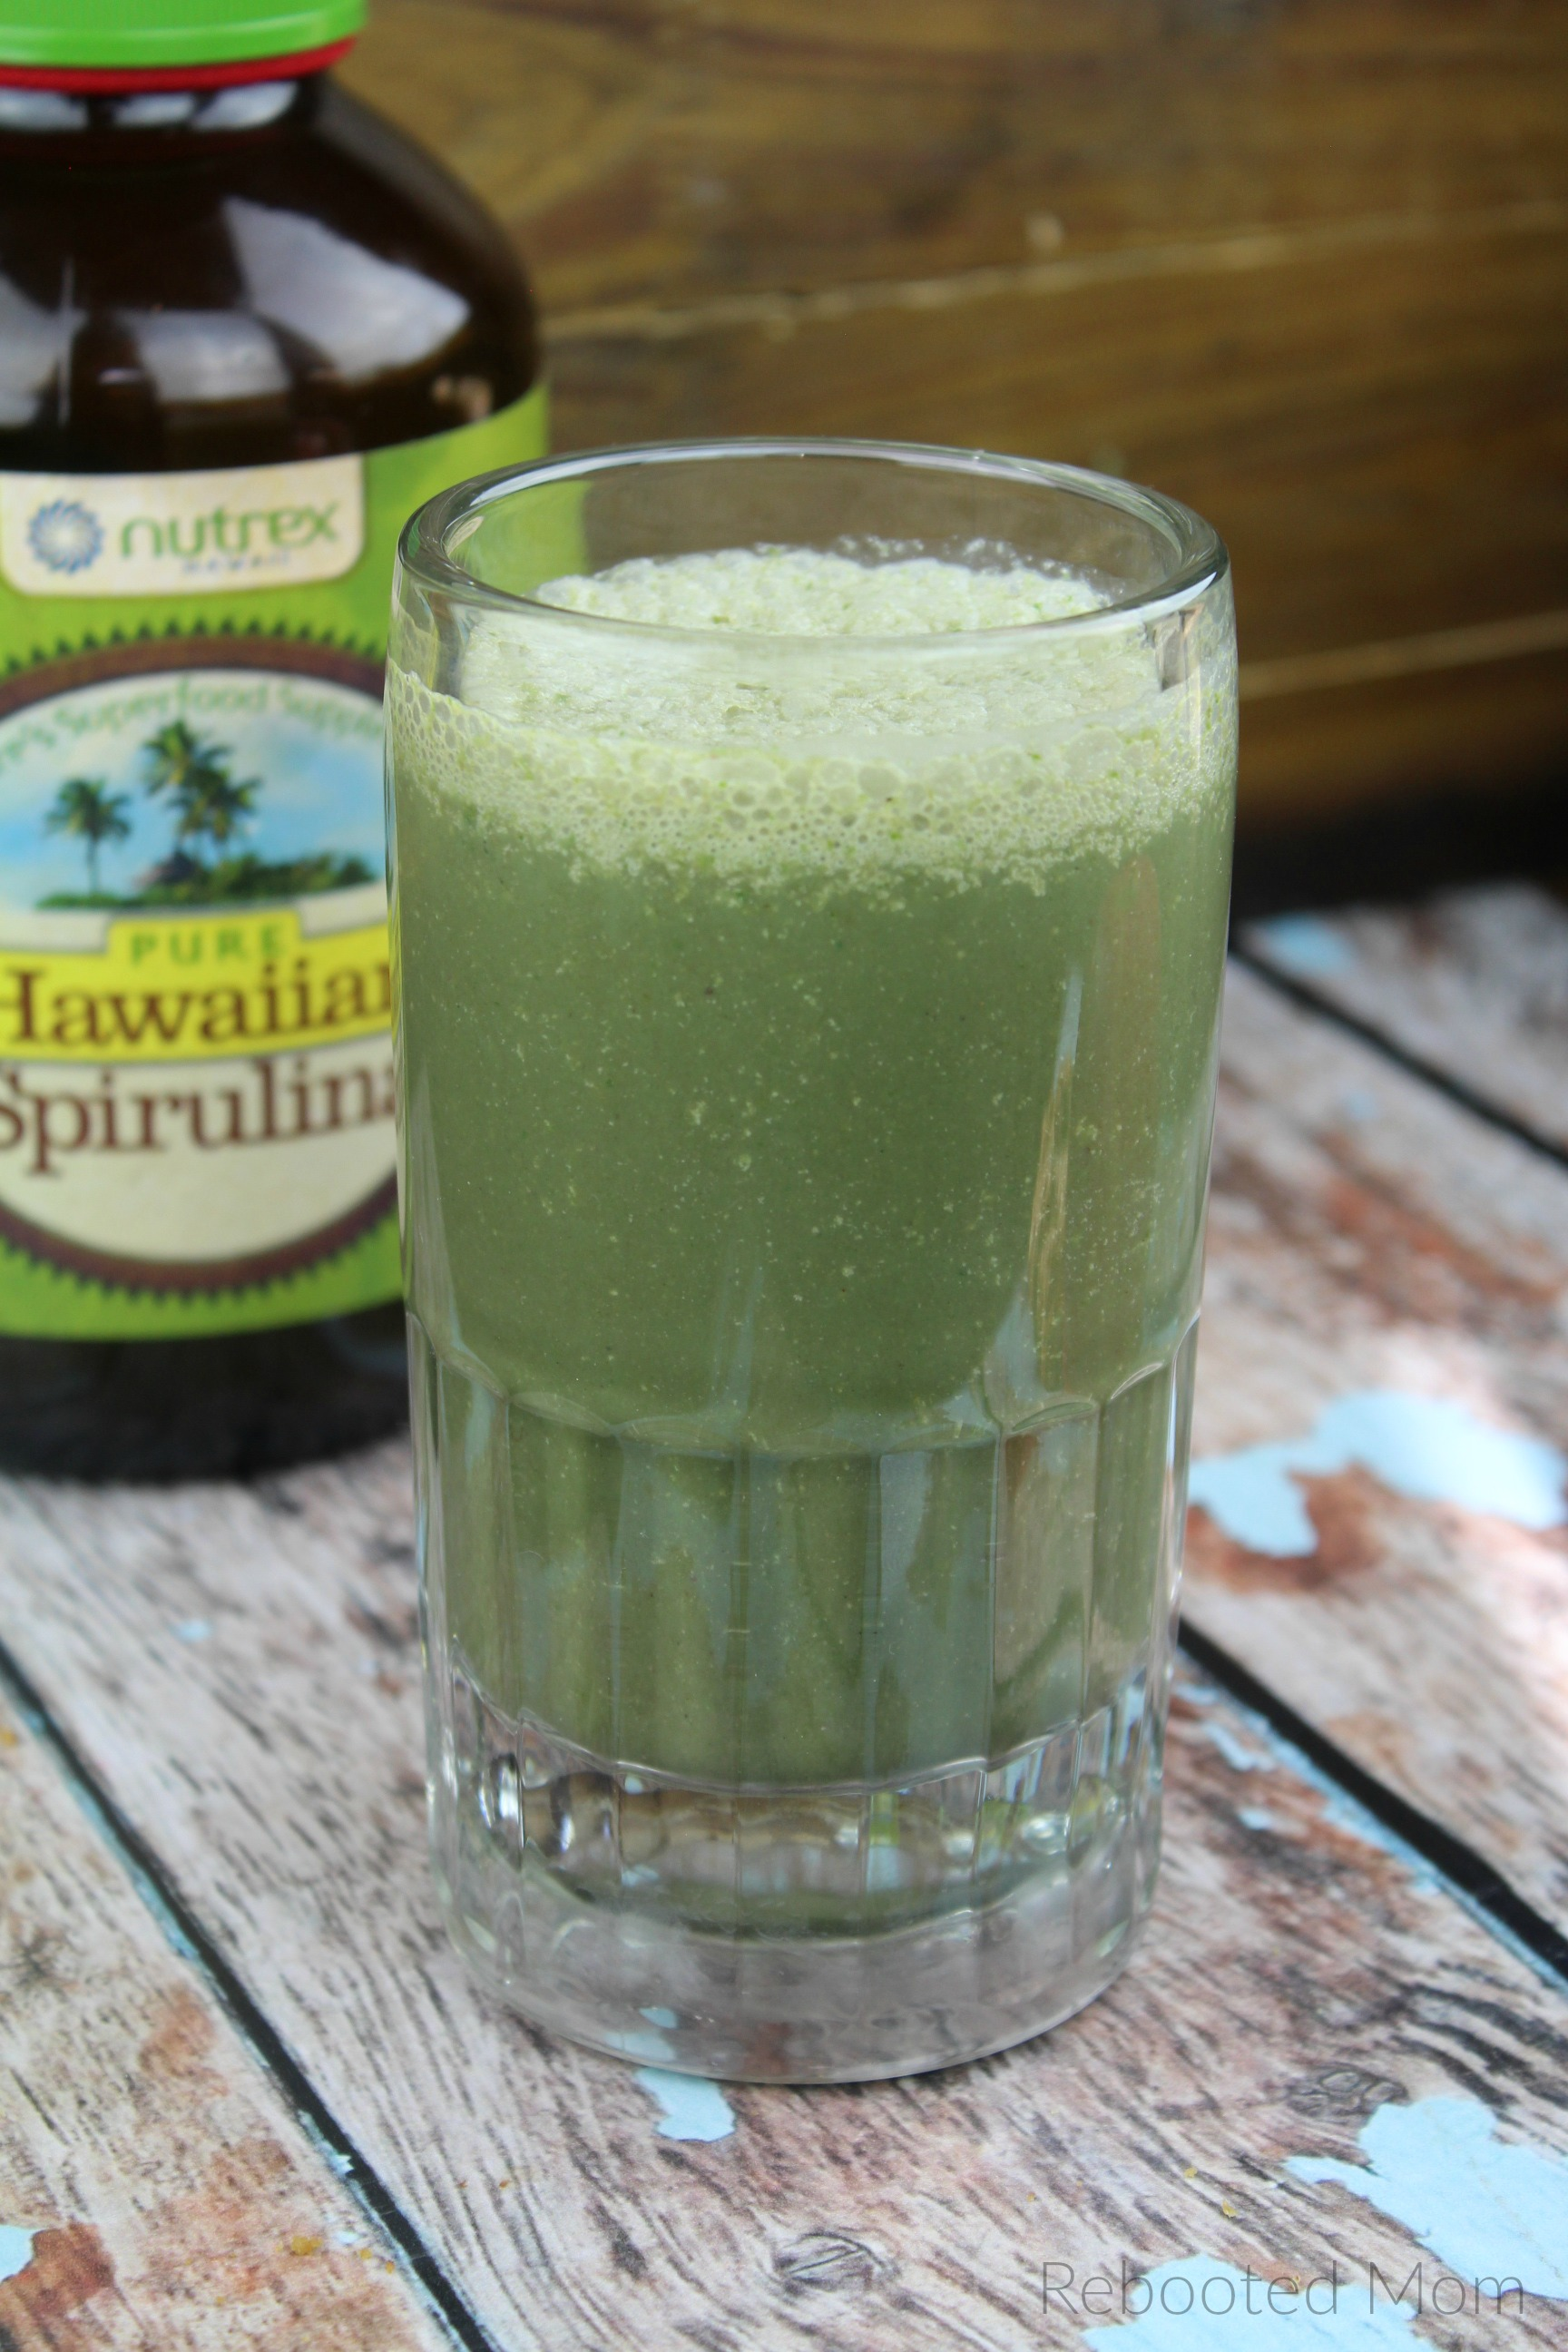 A healthy and nutritious green smoothie full of healthy vitamins and minerals - the perfect superfood to fuel your breakfast! #spirulina #smoothie #healthy #superfood